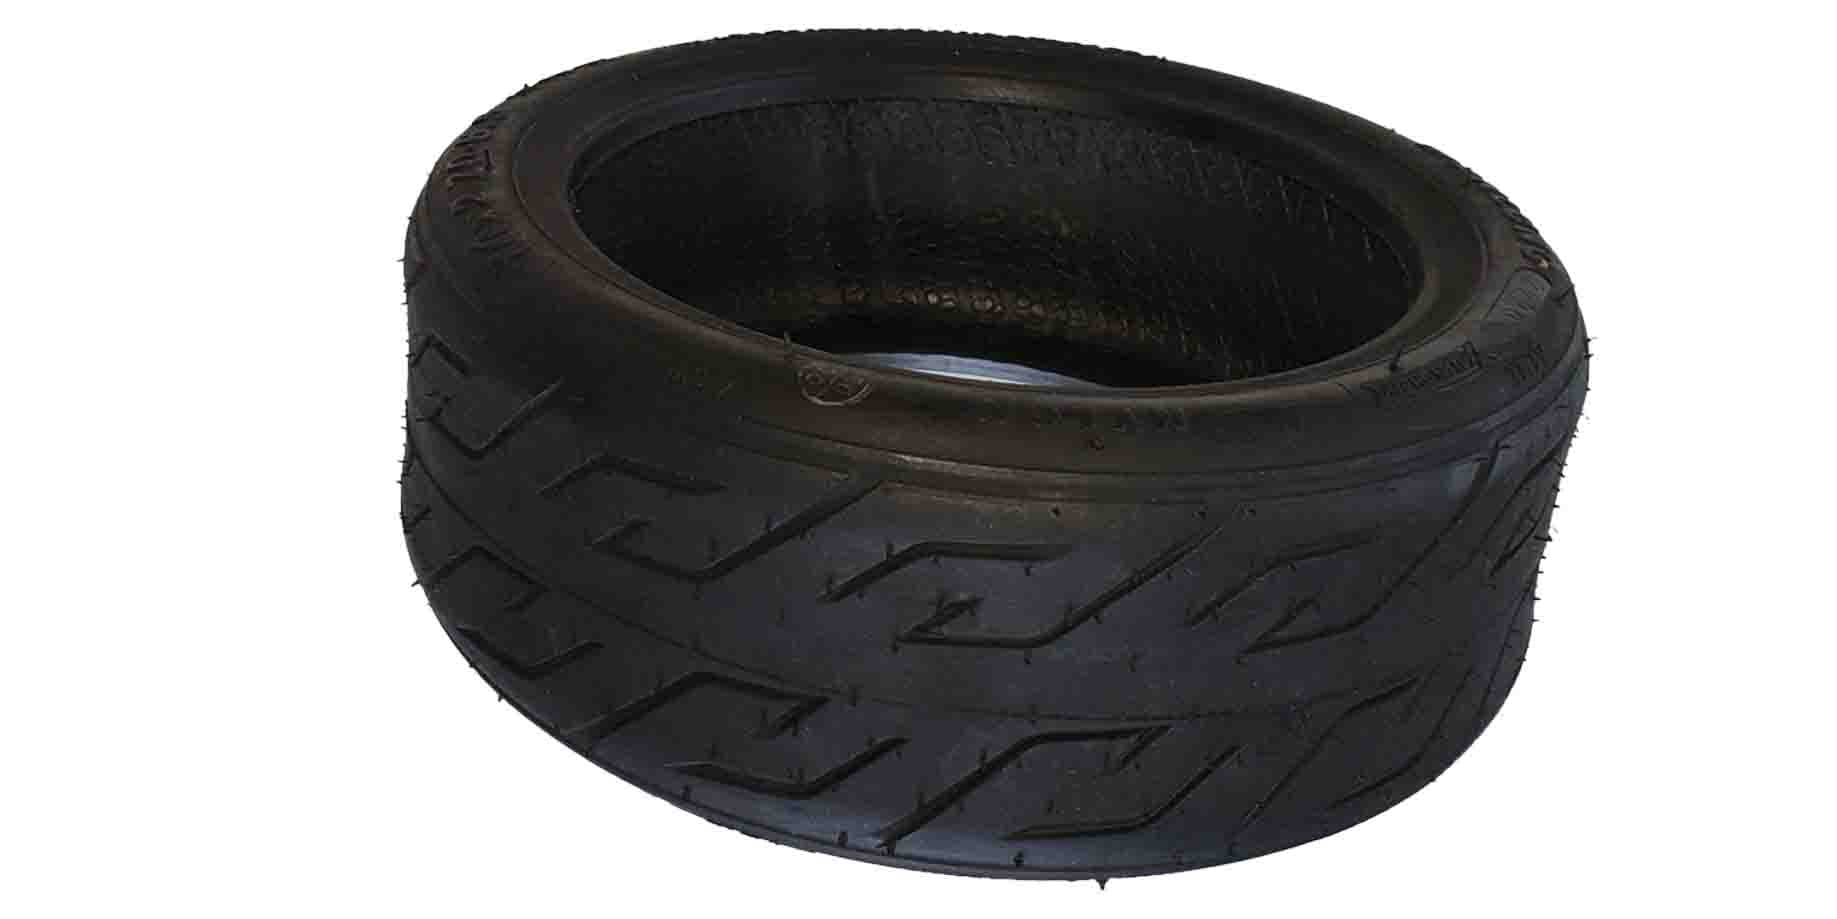 eMove Cruiser Pneumatic tire